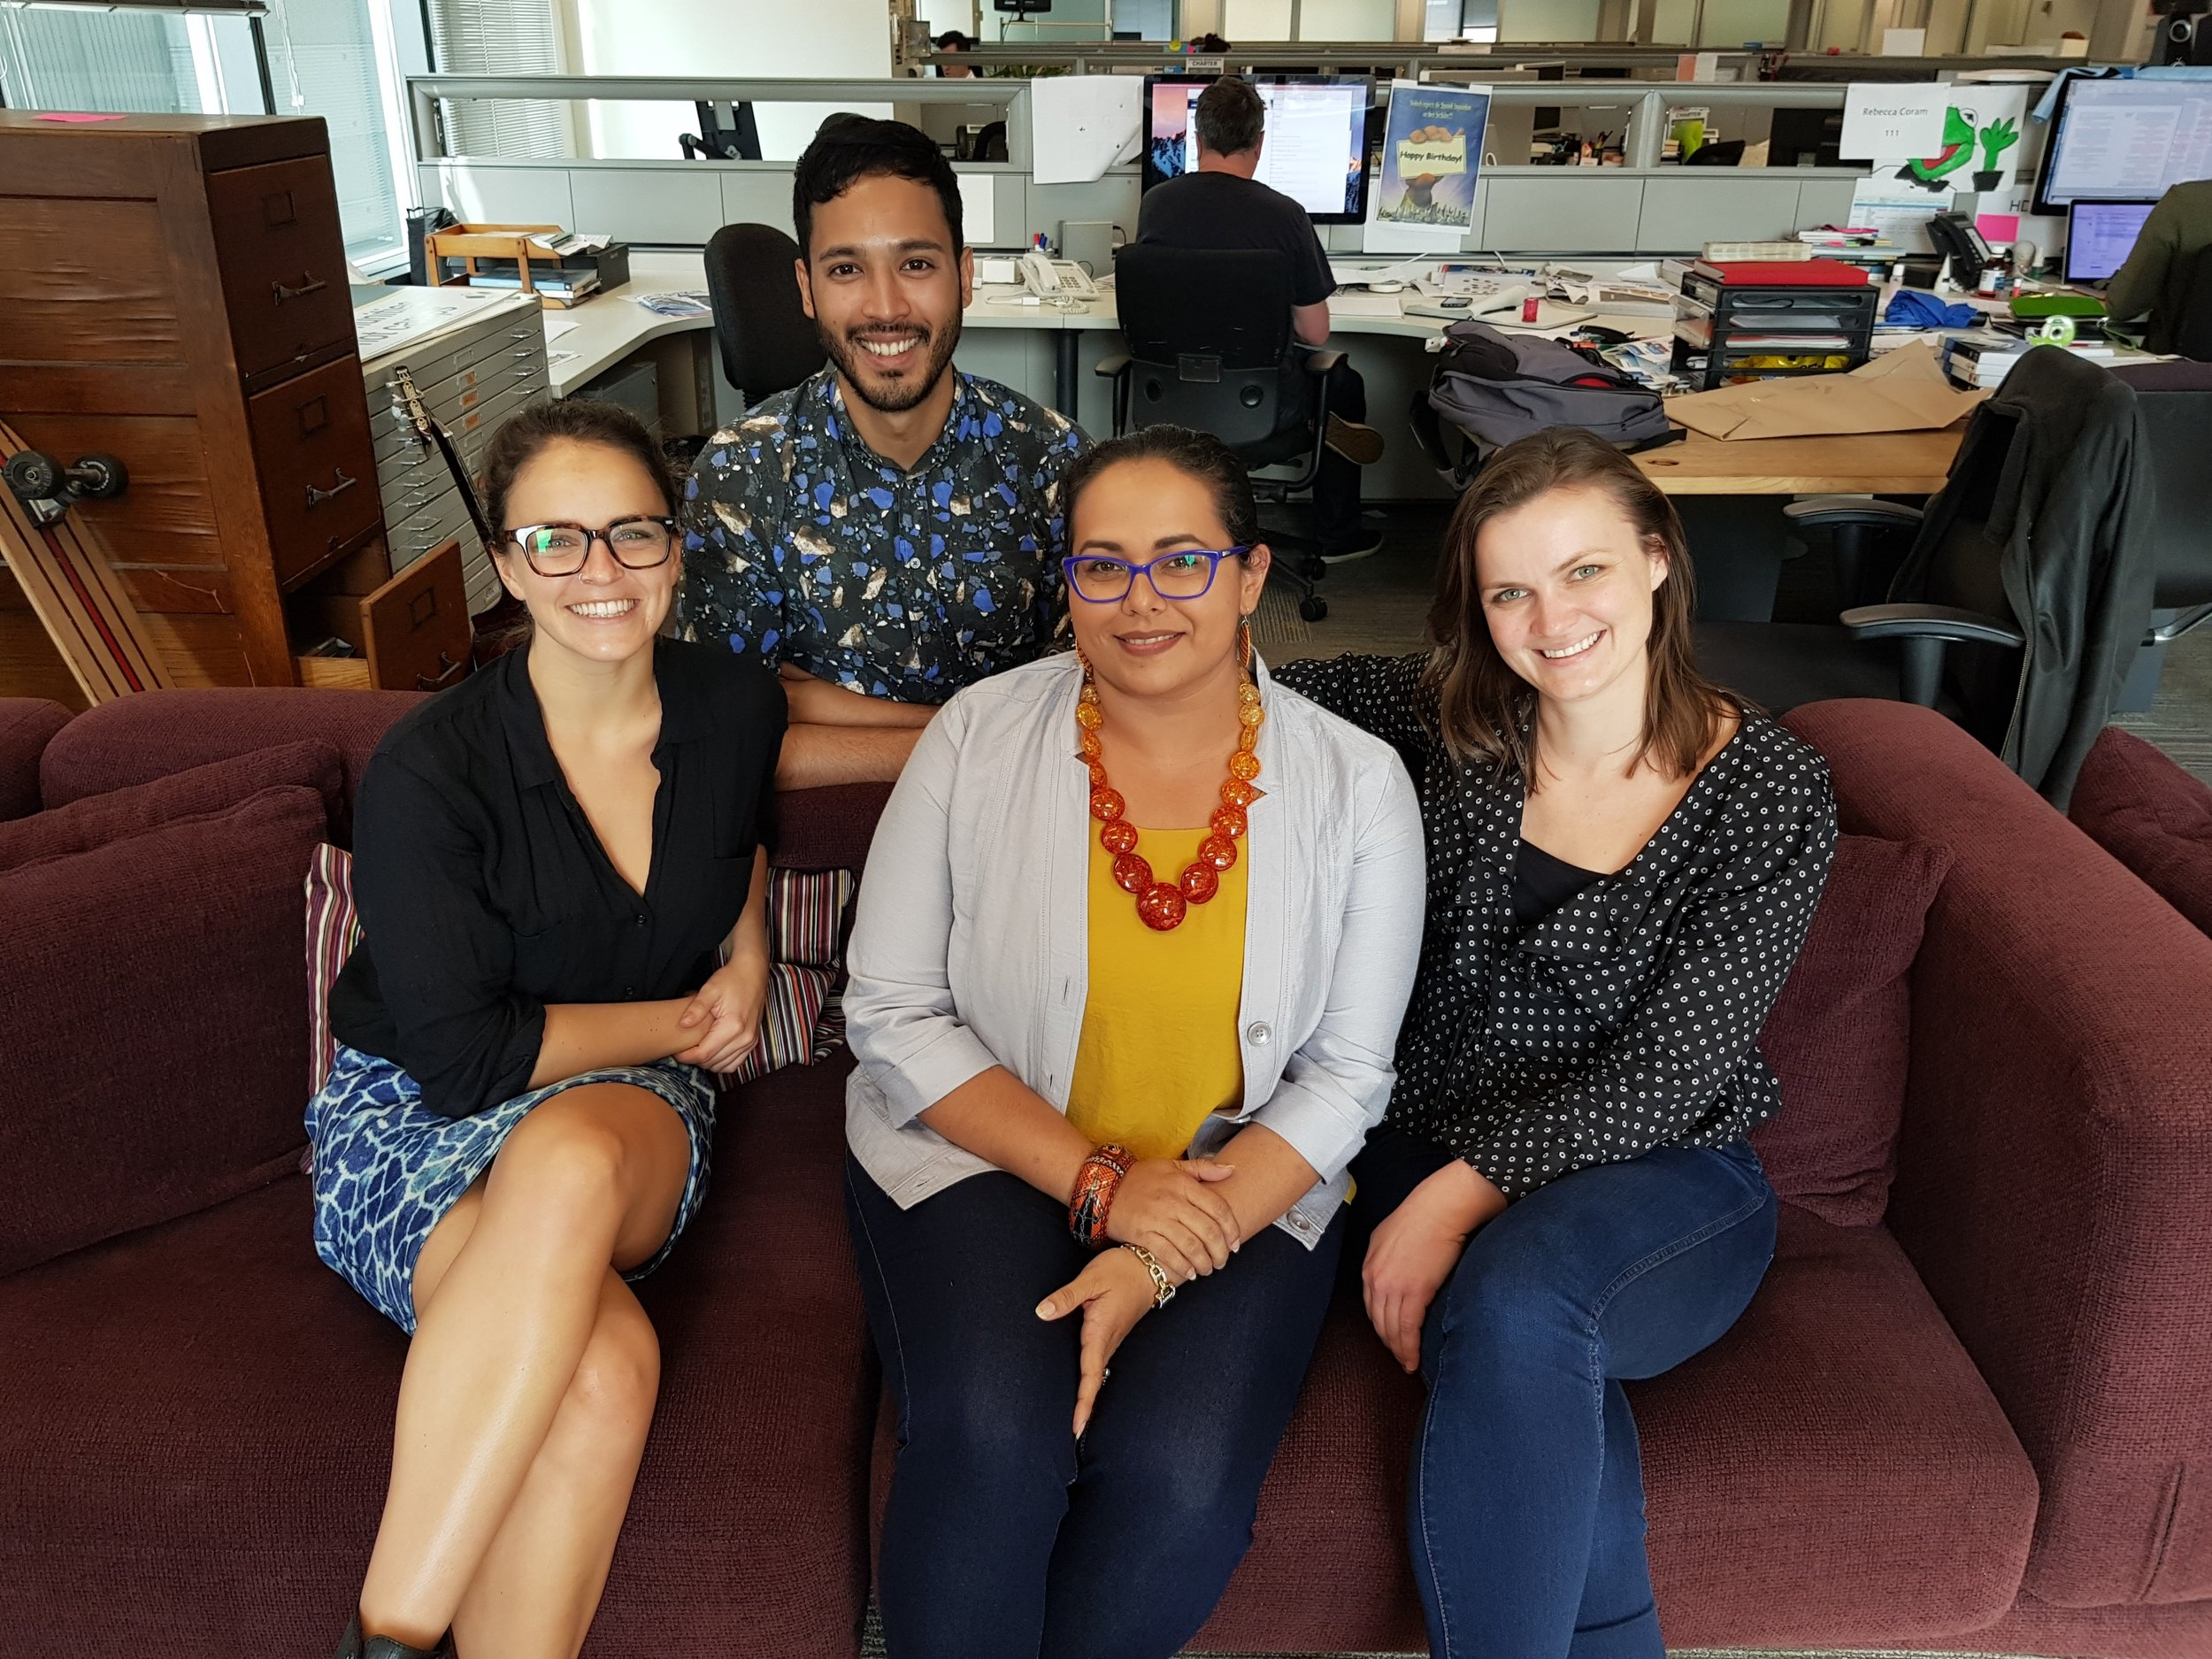 AbCF Community Development Officer Lauren (middle seated) with (from left to right) Kayla, Law & Monique from Essential Media Sydney.